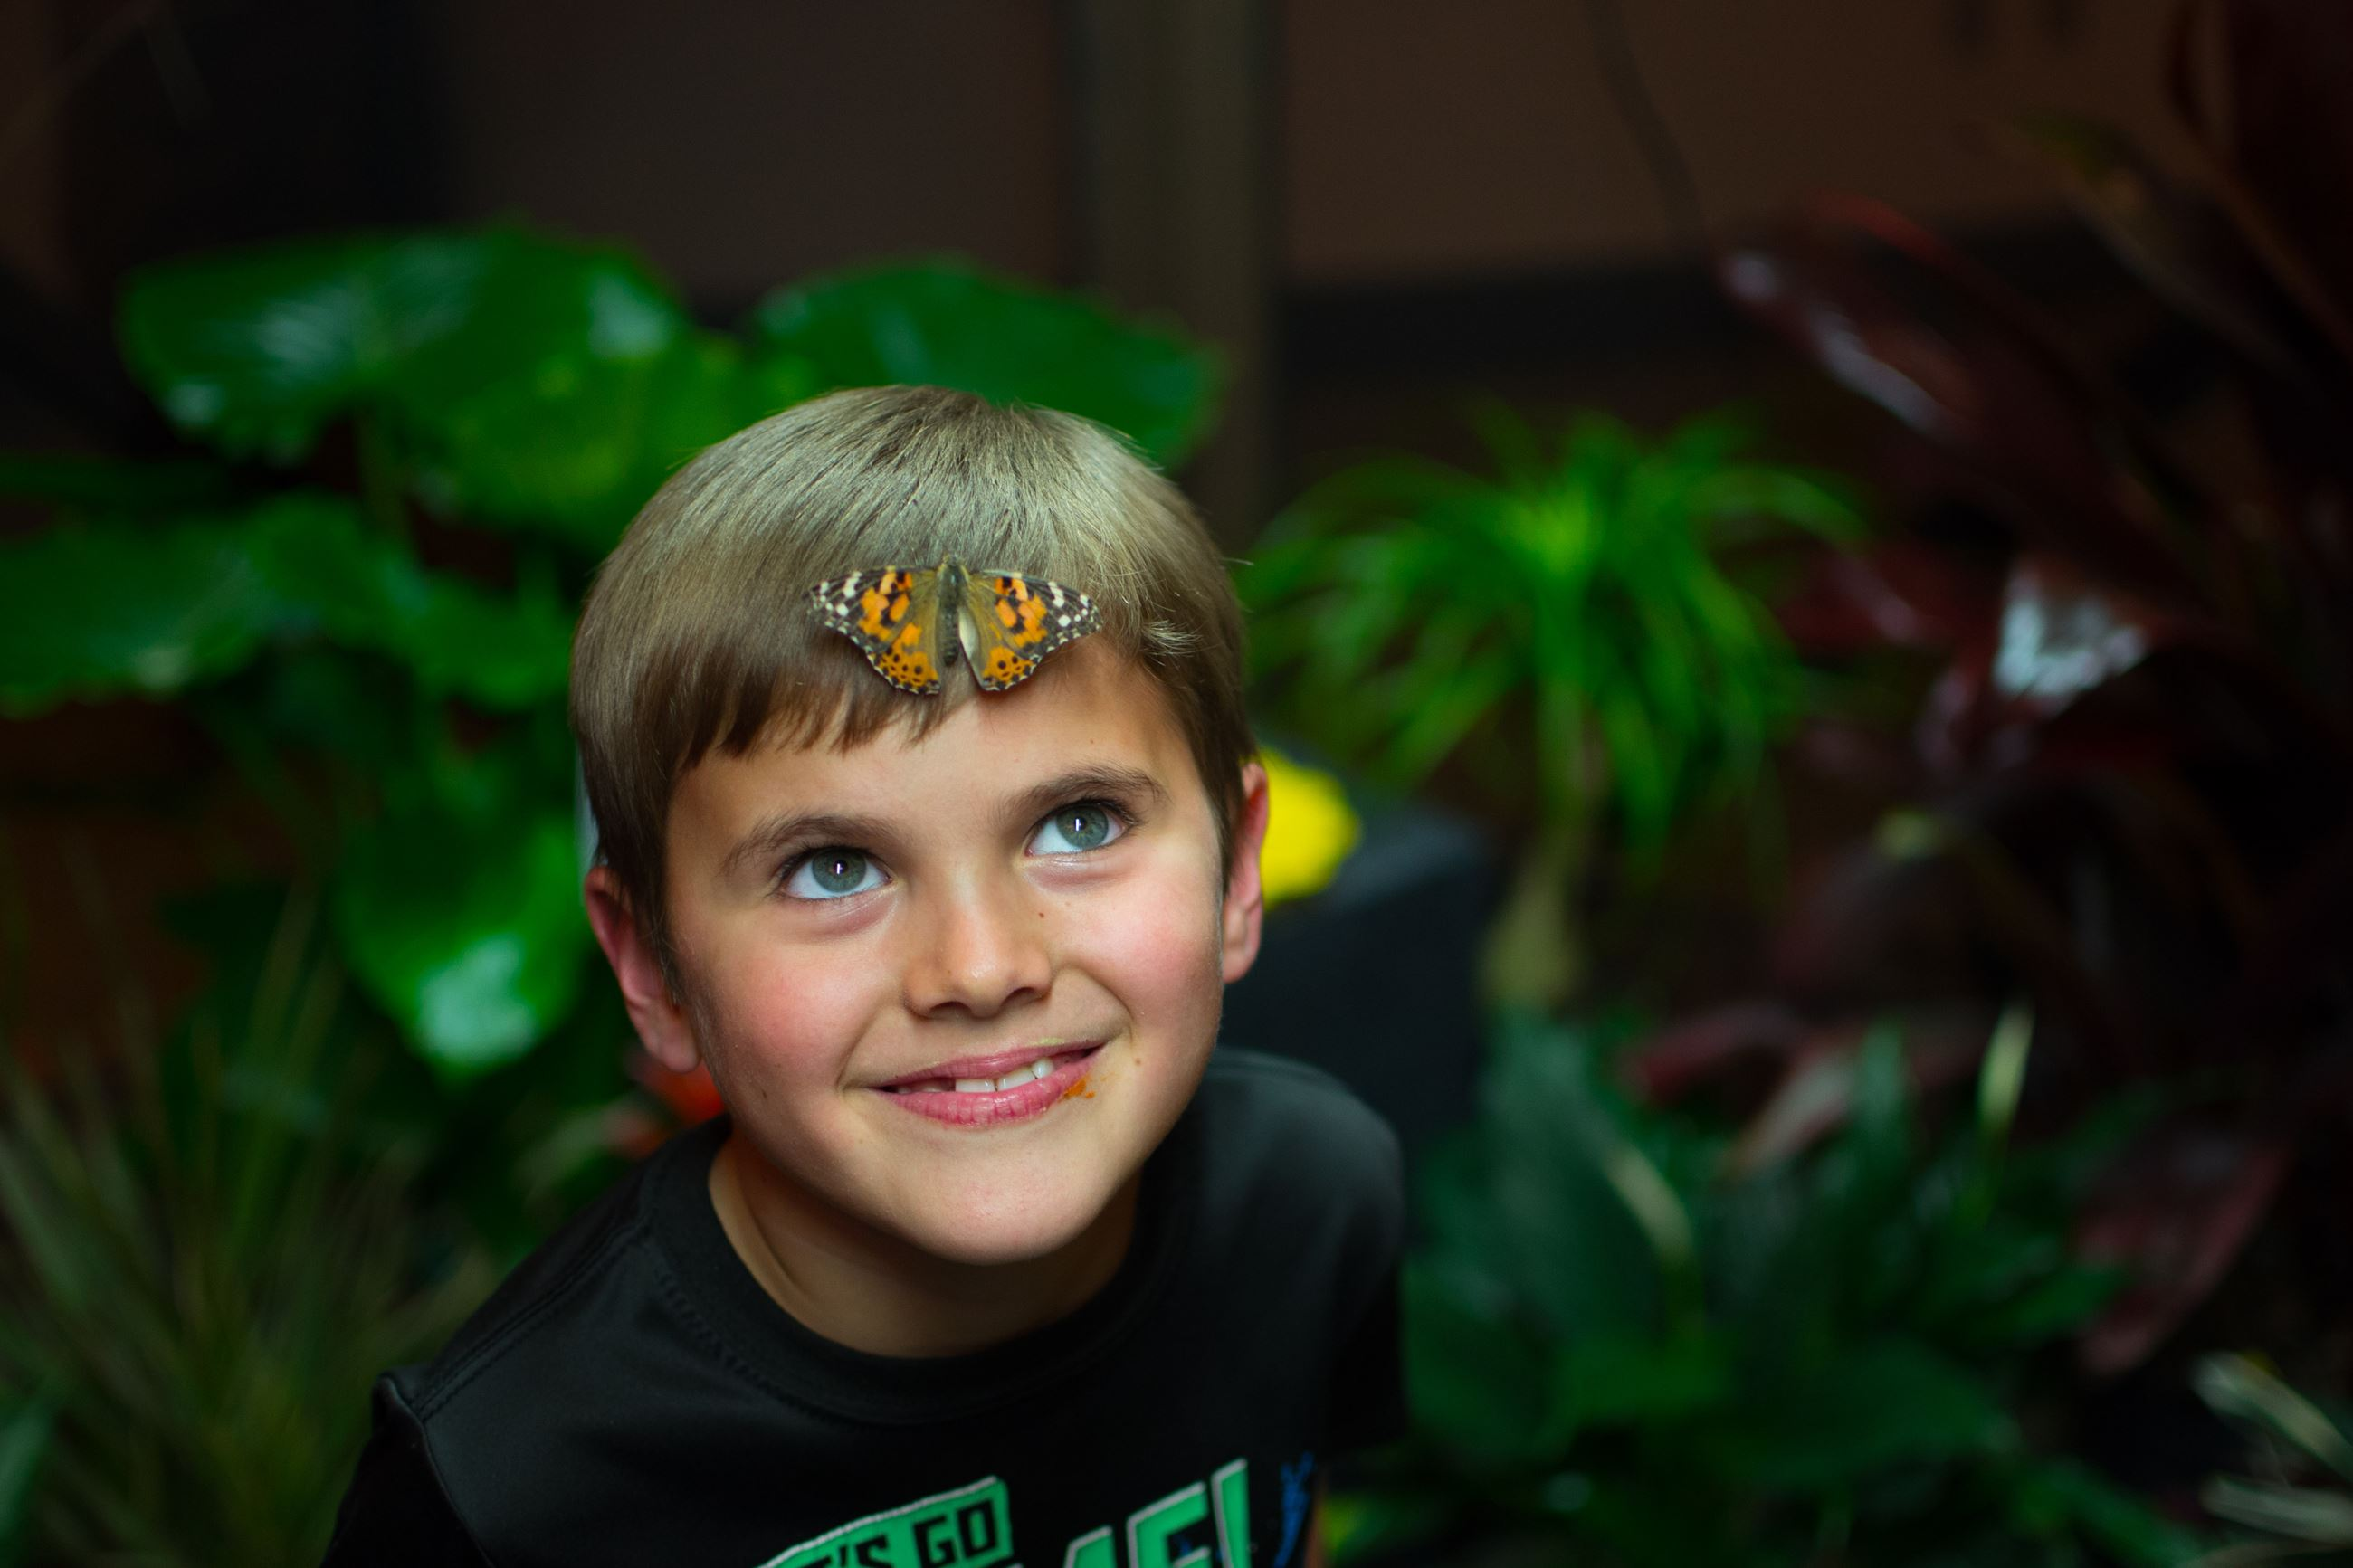 Kid with butterfly on face